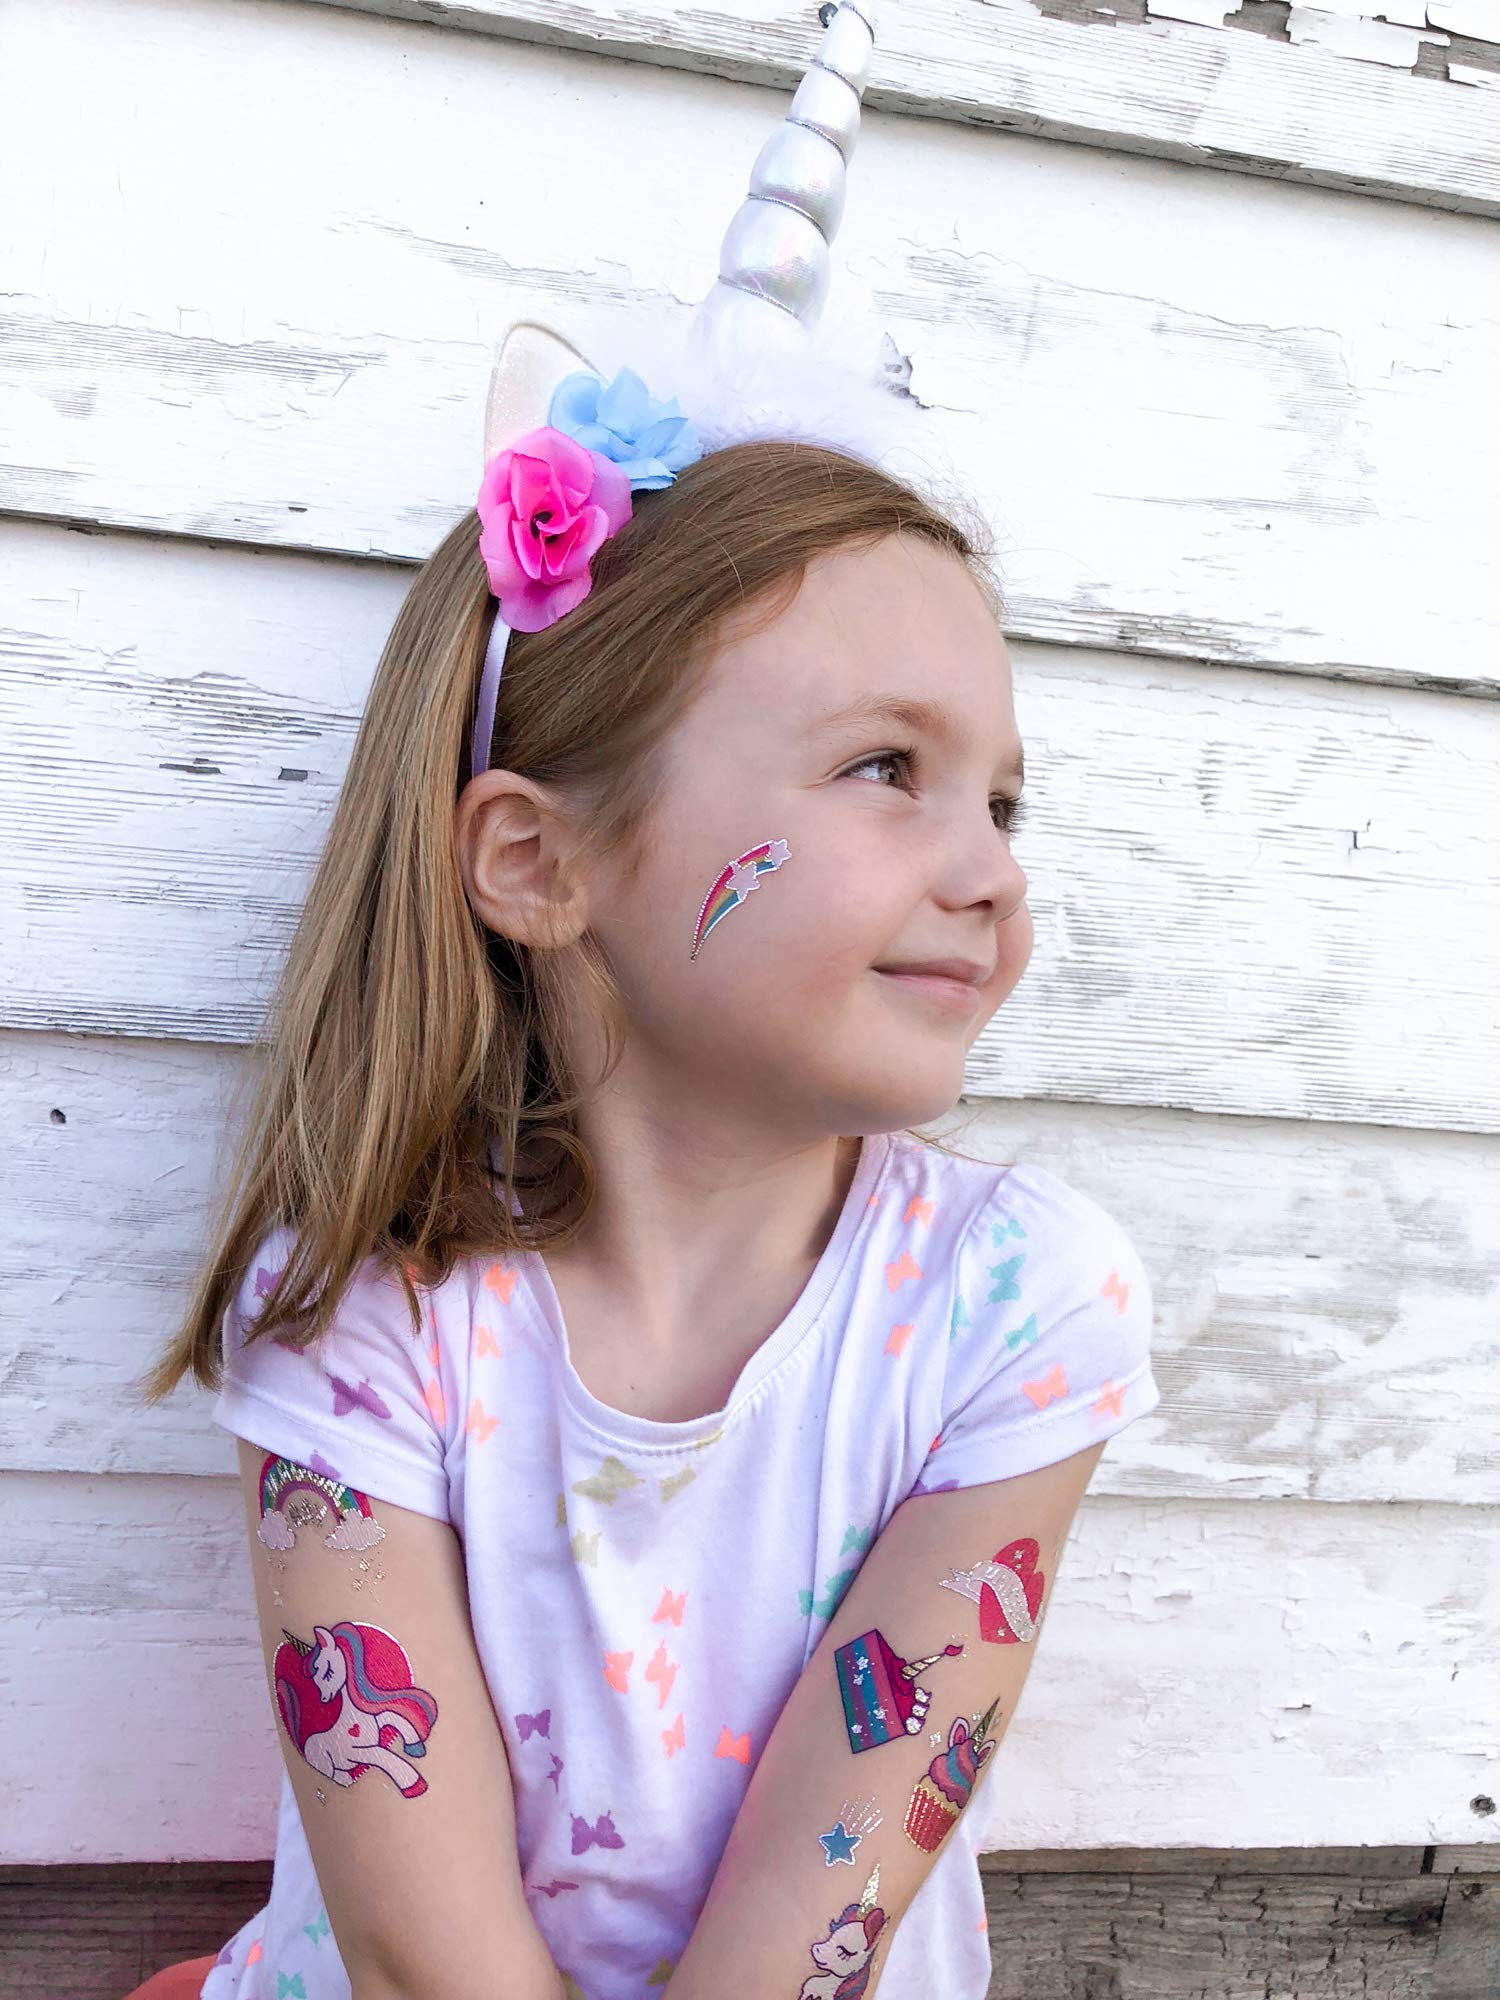 xo, Fetti Unicorn Party Supplies Temporary Tattoos for Kids - 36 Glitter Styles | Unicorn Party Favors and Birthday… 7